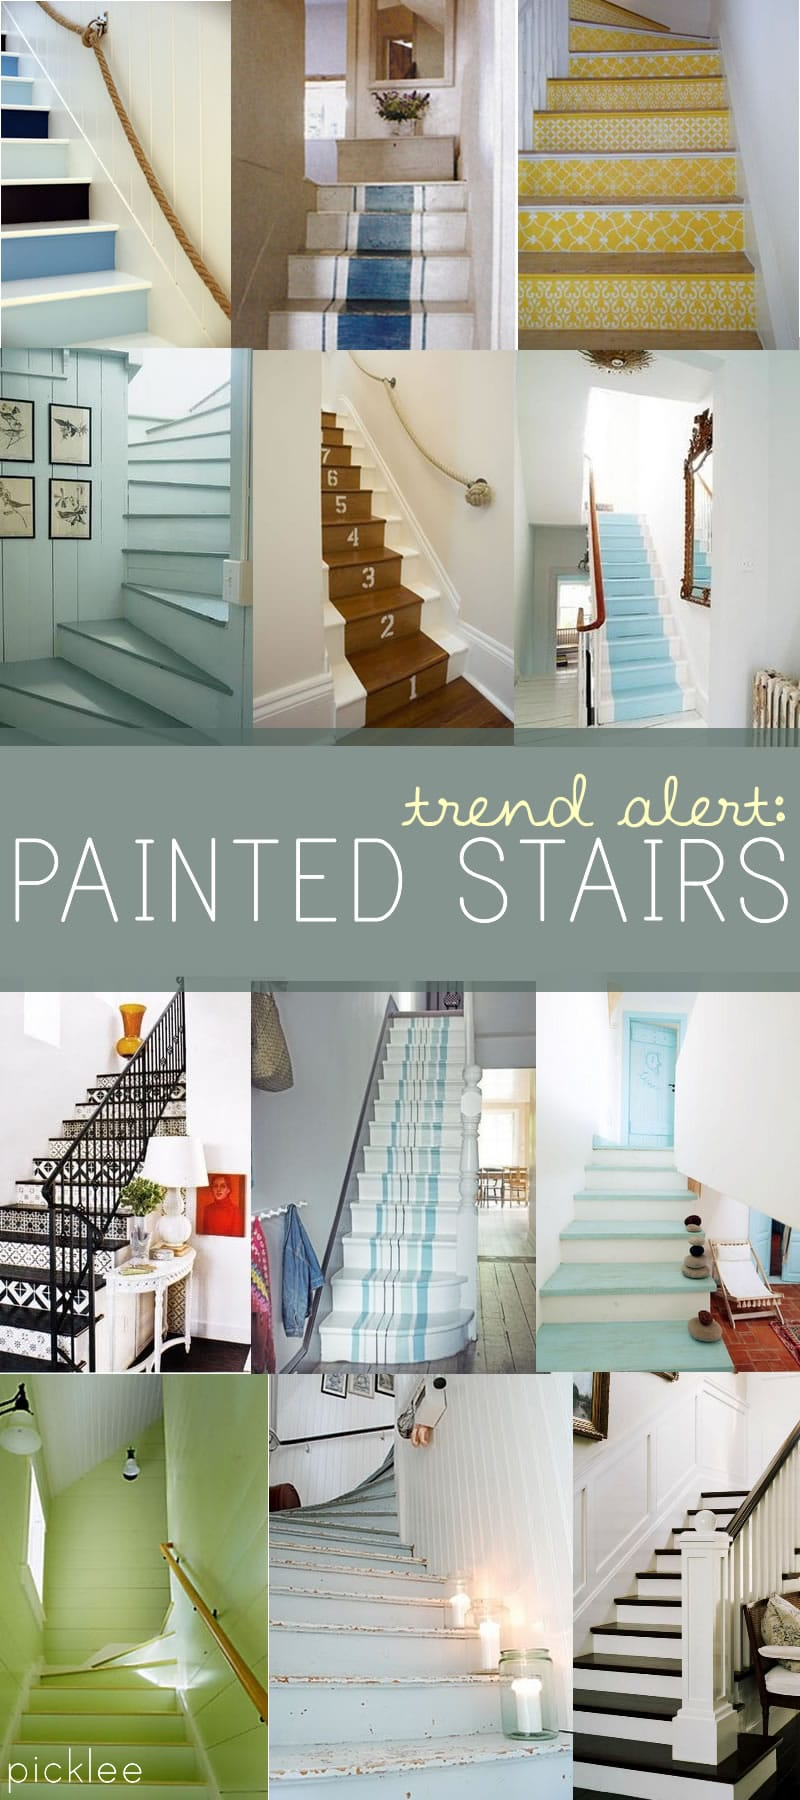 painted-stairs-diy-tutorial